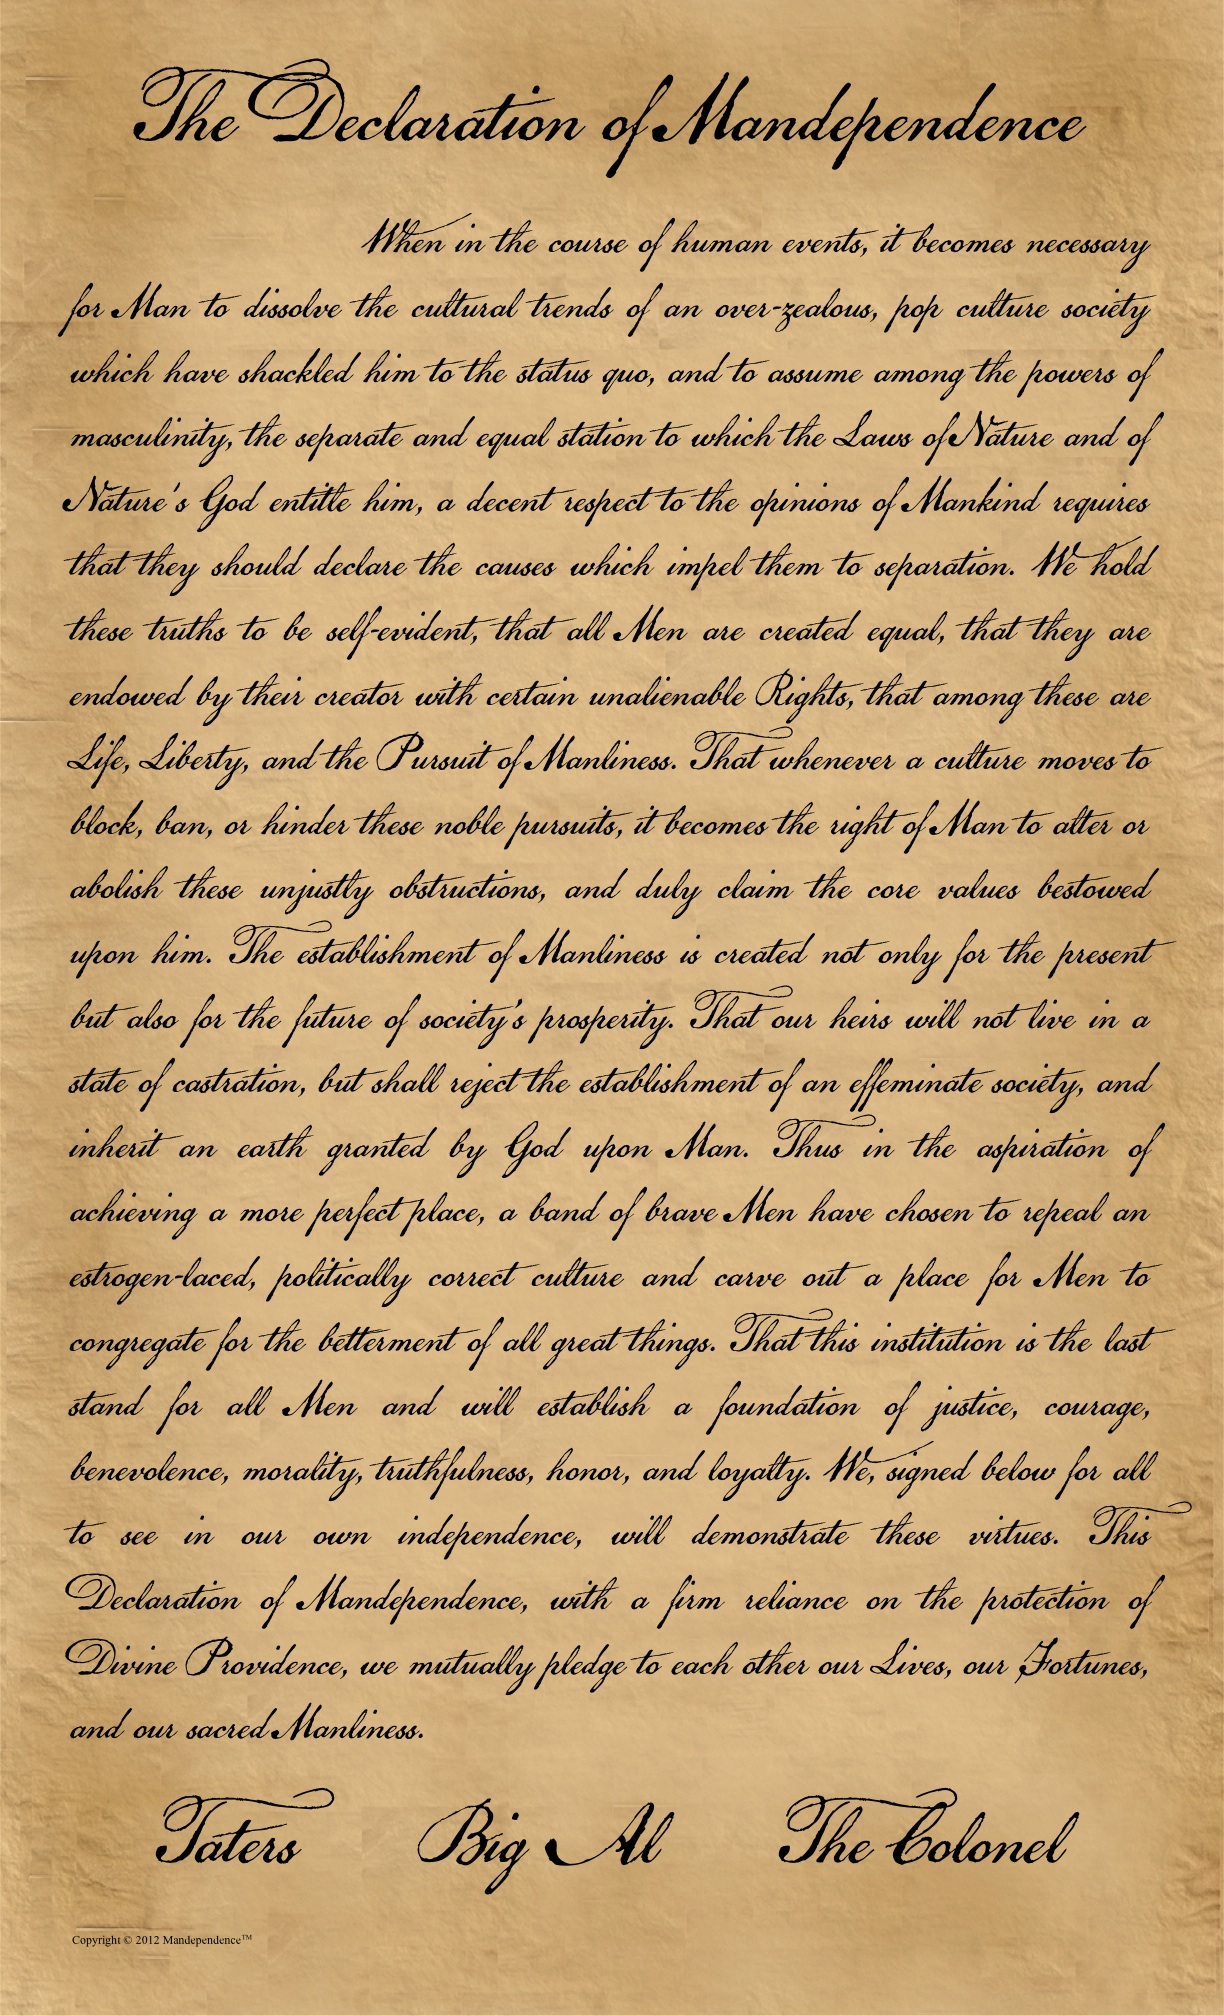 The Declaration of Mandependence The Declaration of Mandependence photo